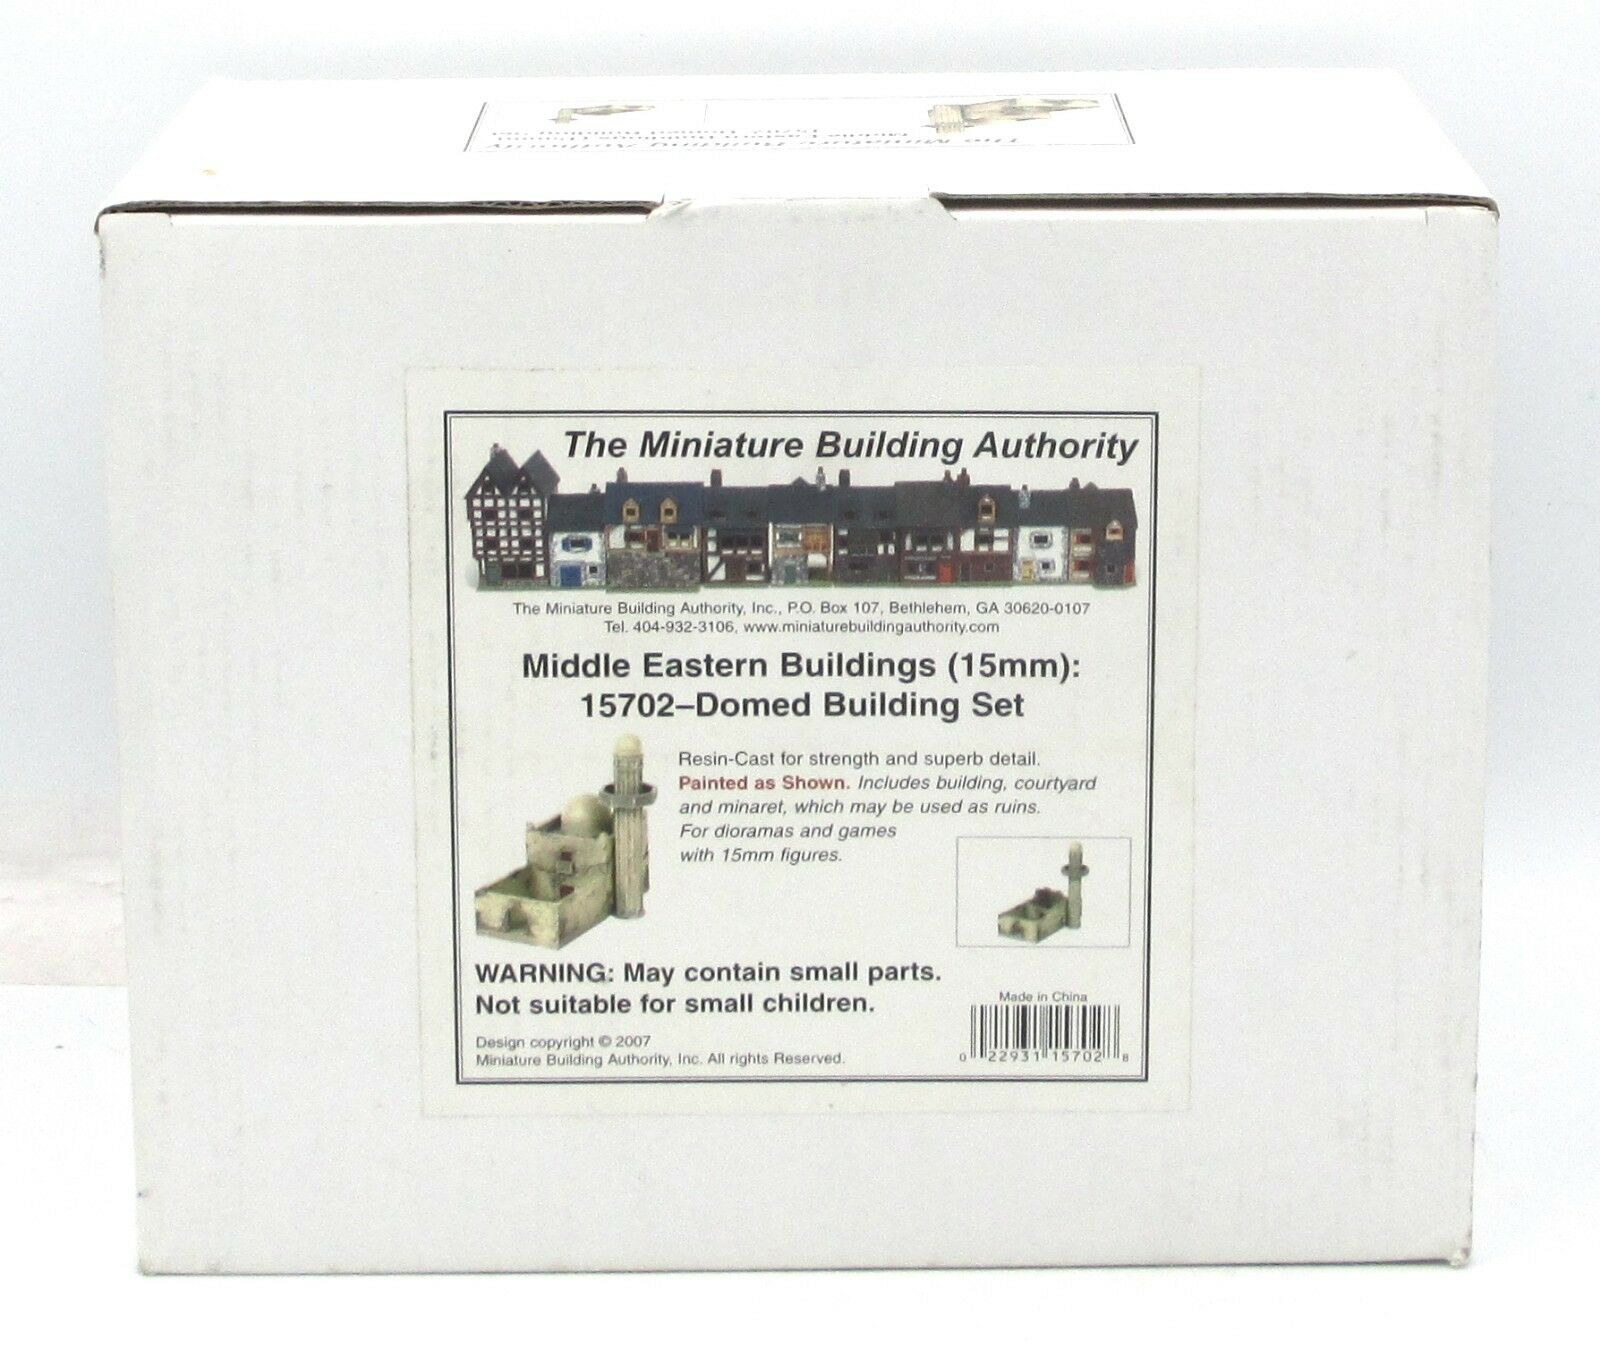 Miniature Building Authority 15702 Domed Building Set (15mm) Middle Eastern NIB